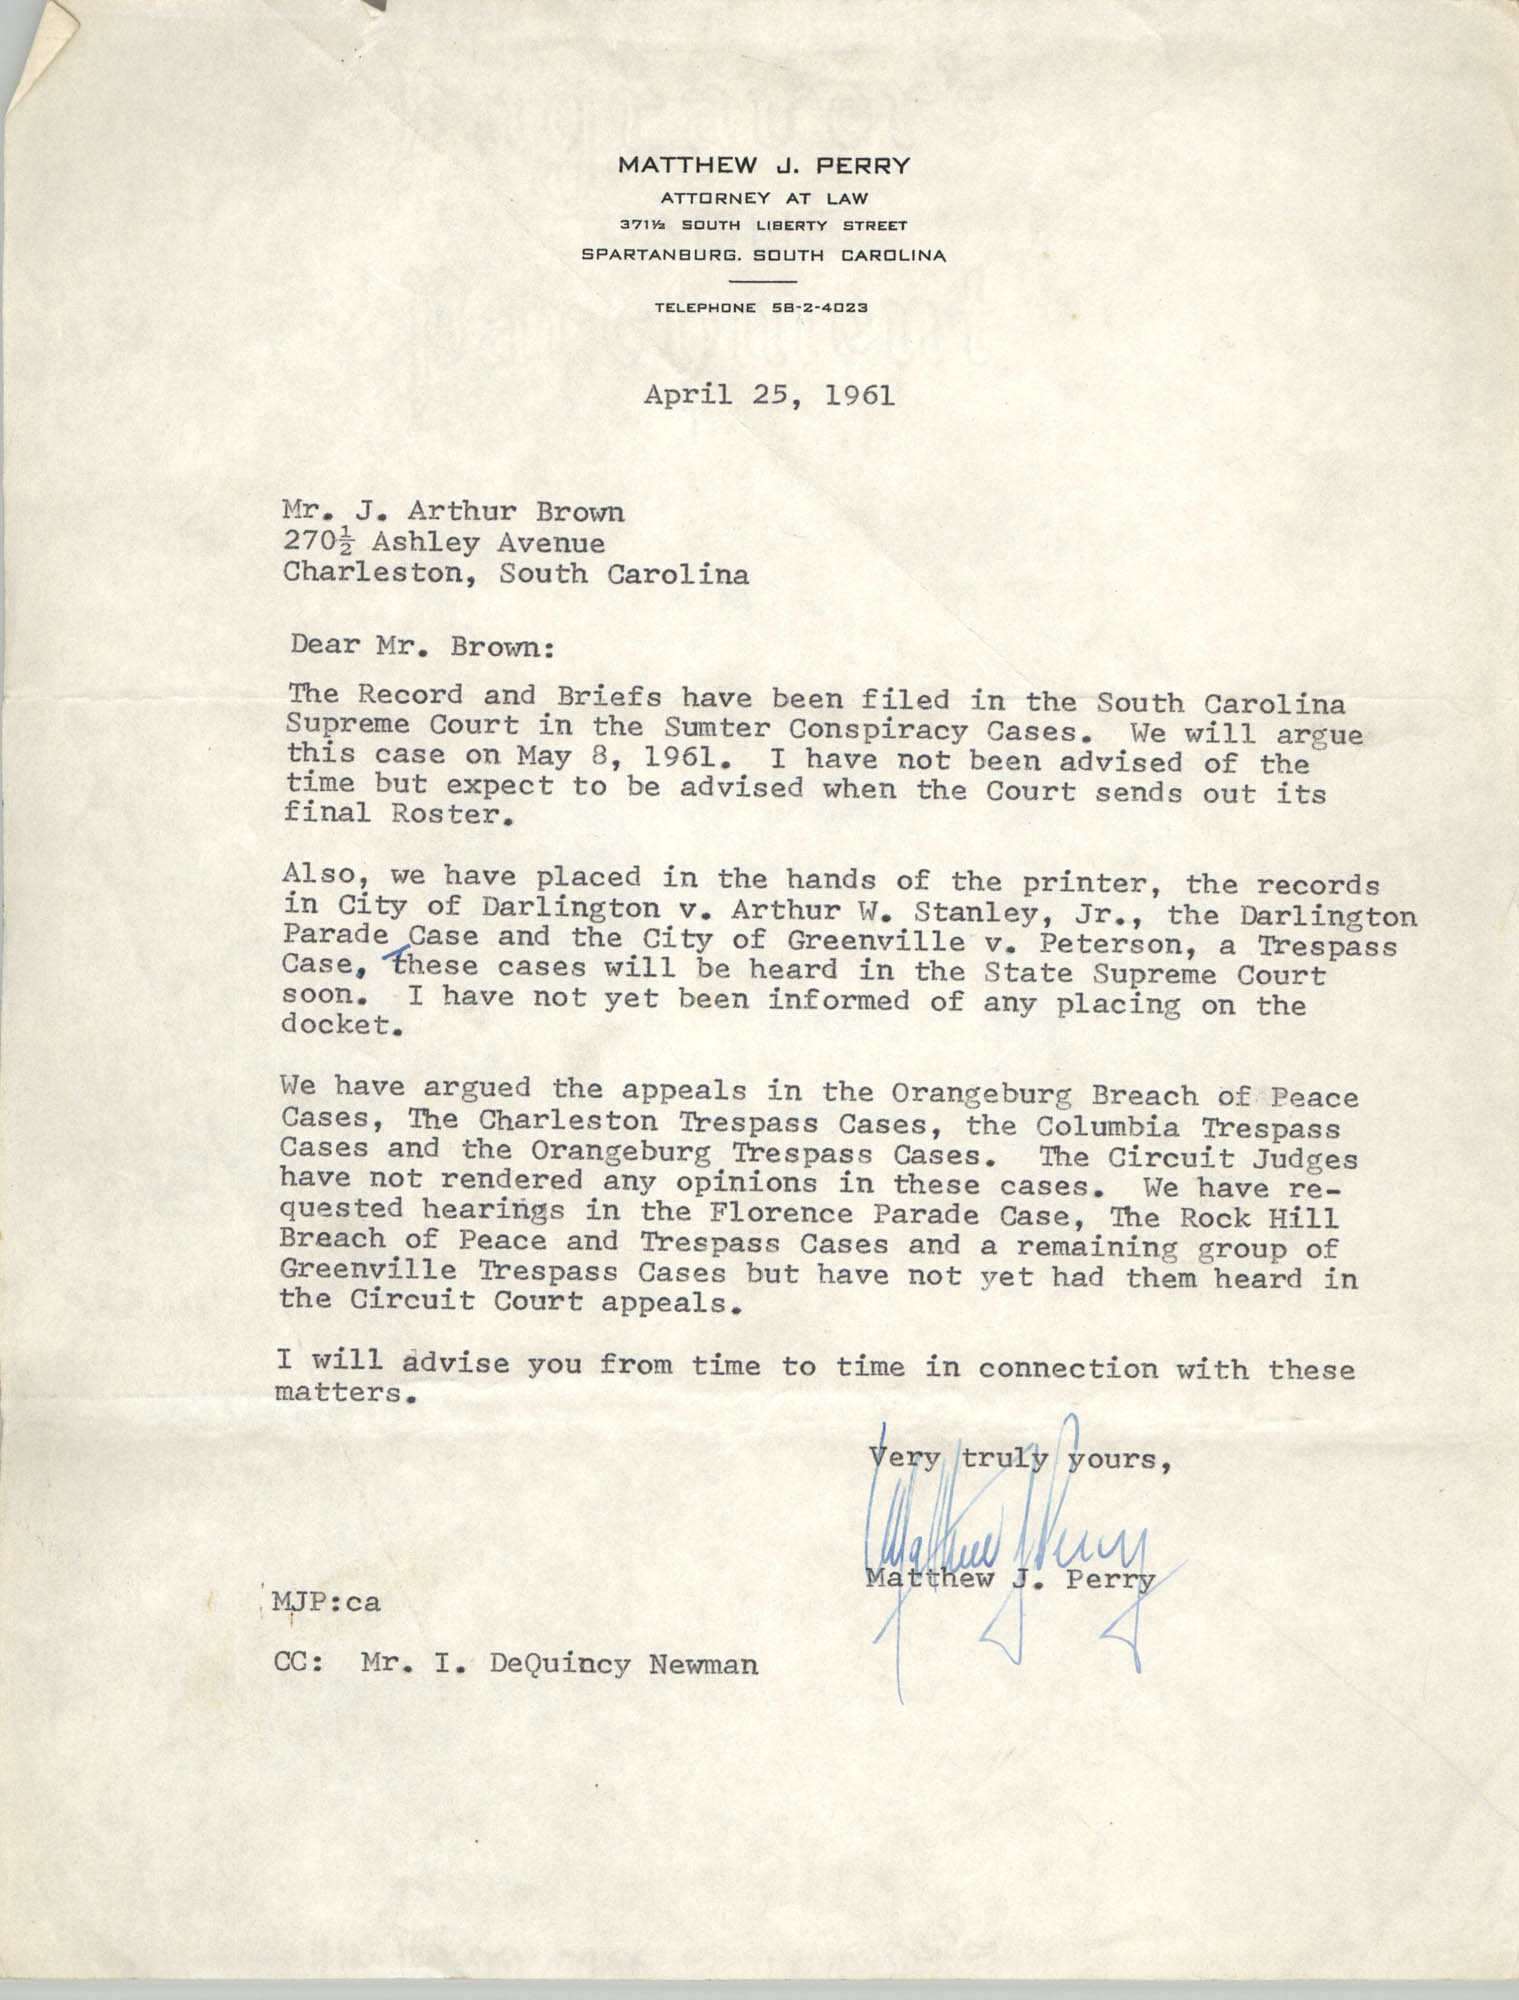 Letter from Matthew J. Perry to J. Arthur Brown, April 25, 1961